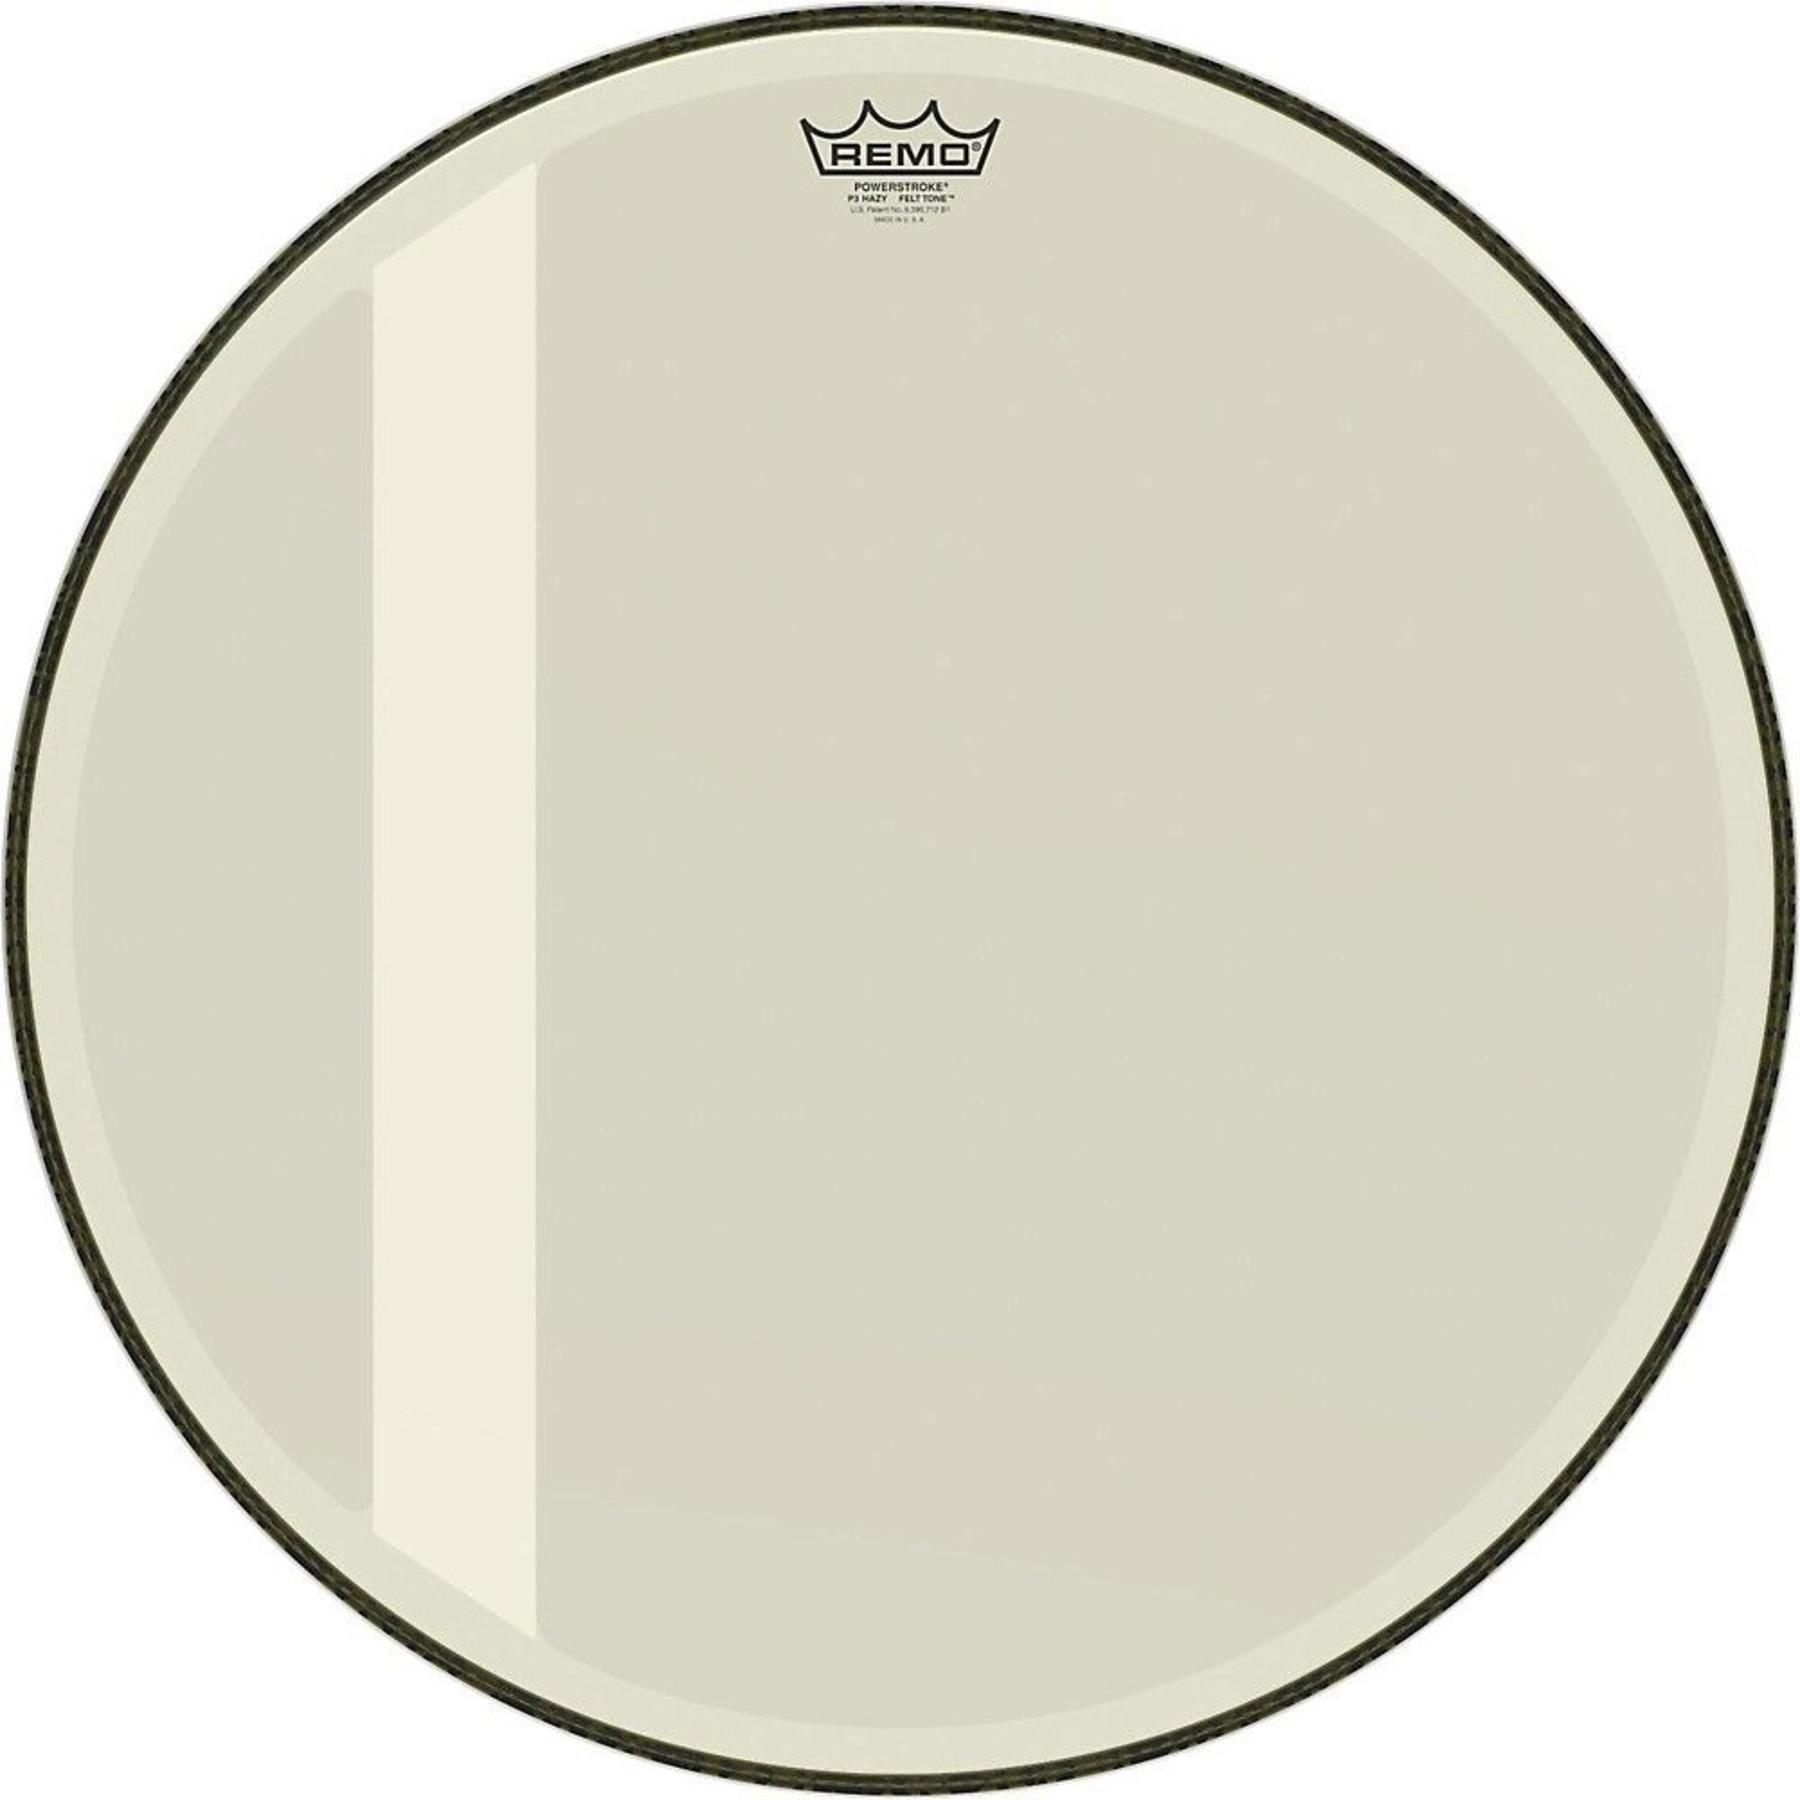 "Remo 22"" Powerstroke P3 Coated Felt Tone Bass Drum Head"